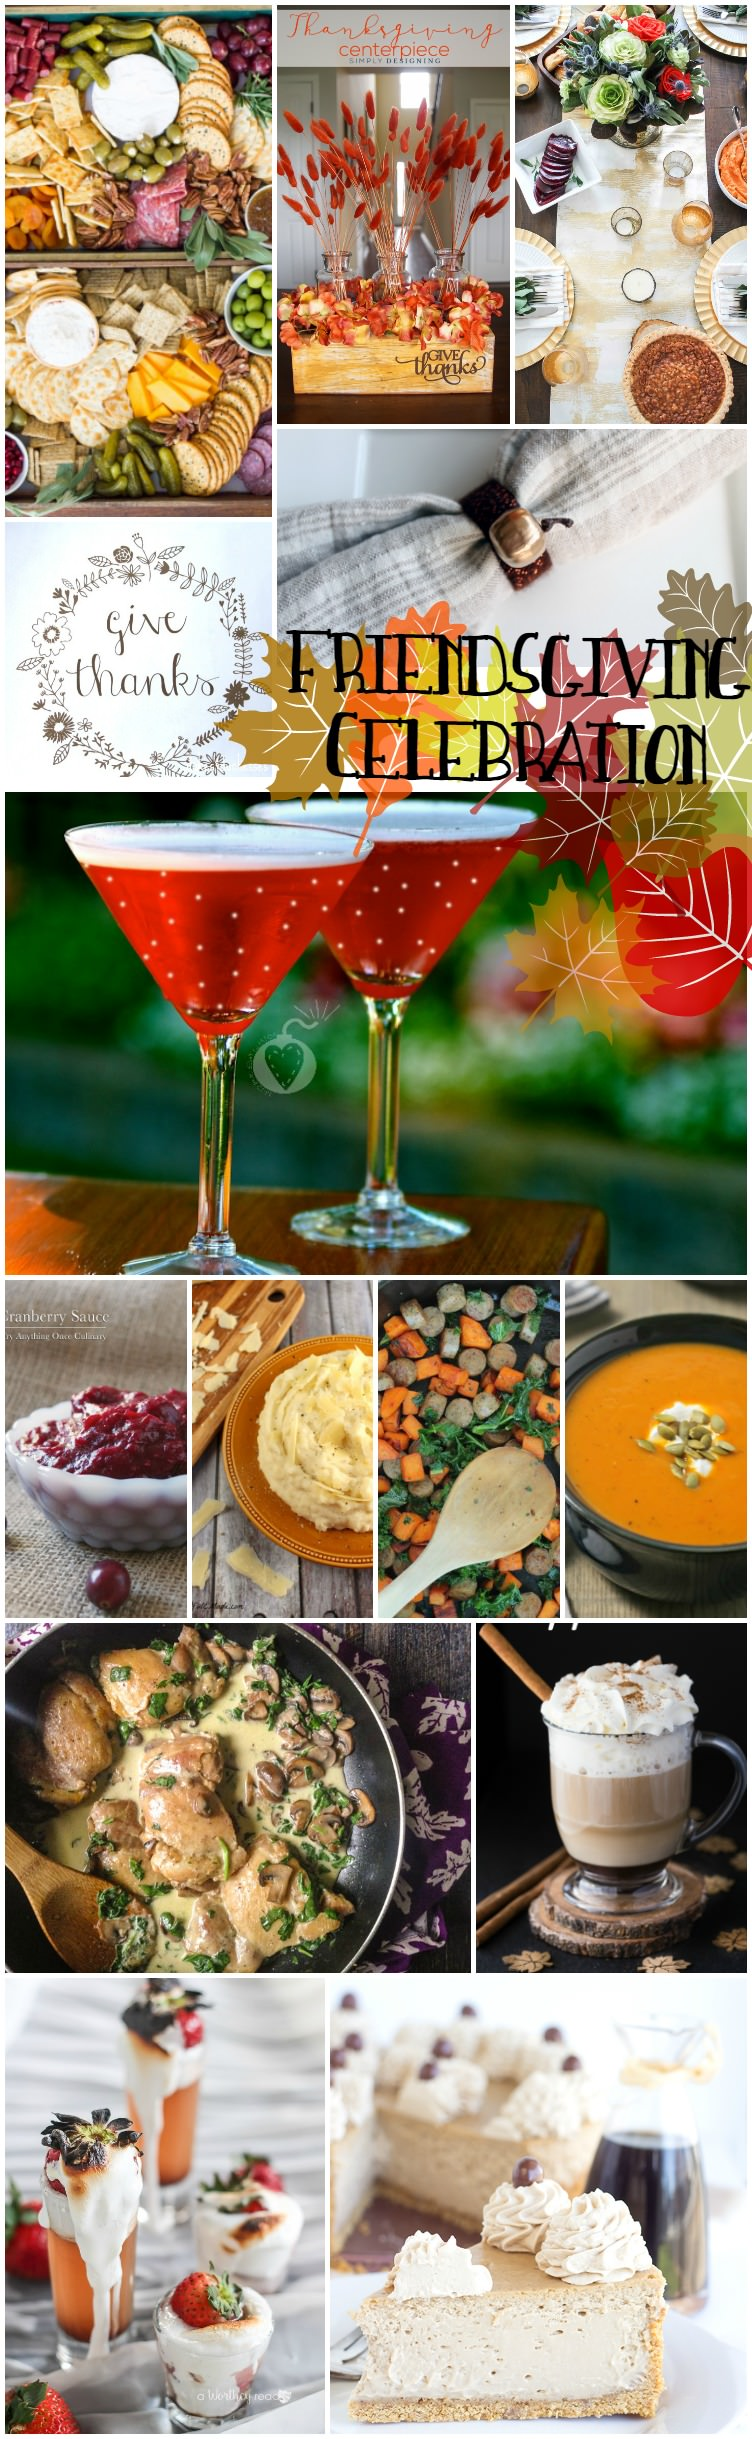 A Friendsgiving Celebration to remember! From decor to dinner, drinks, and dessert.